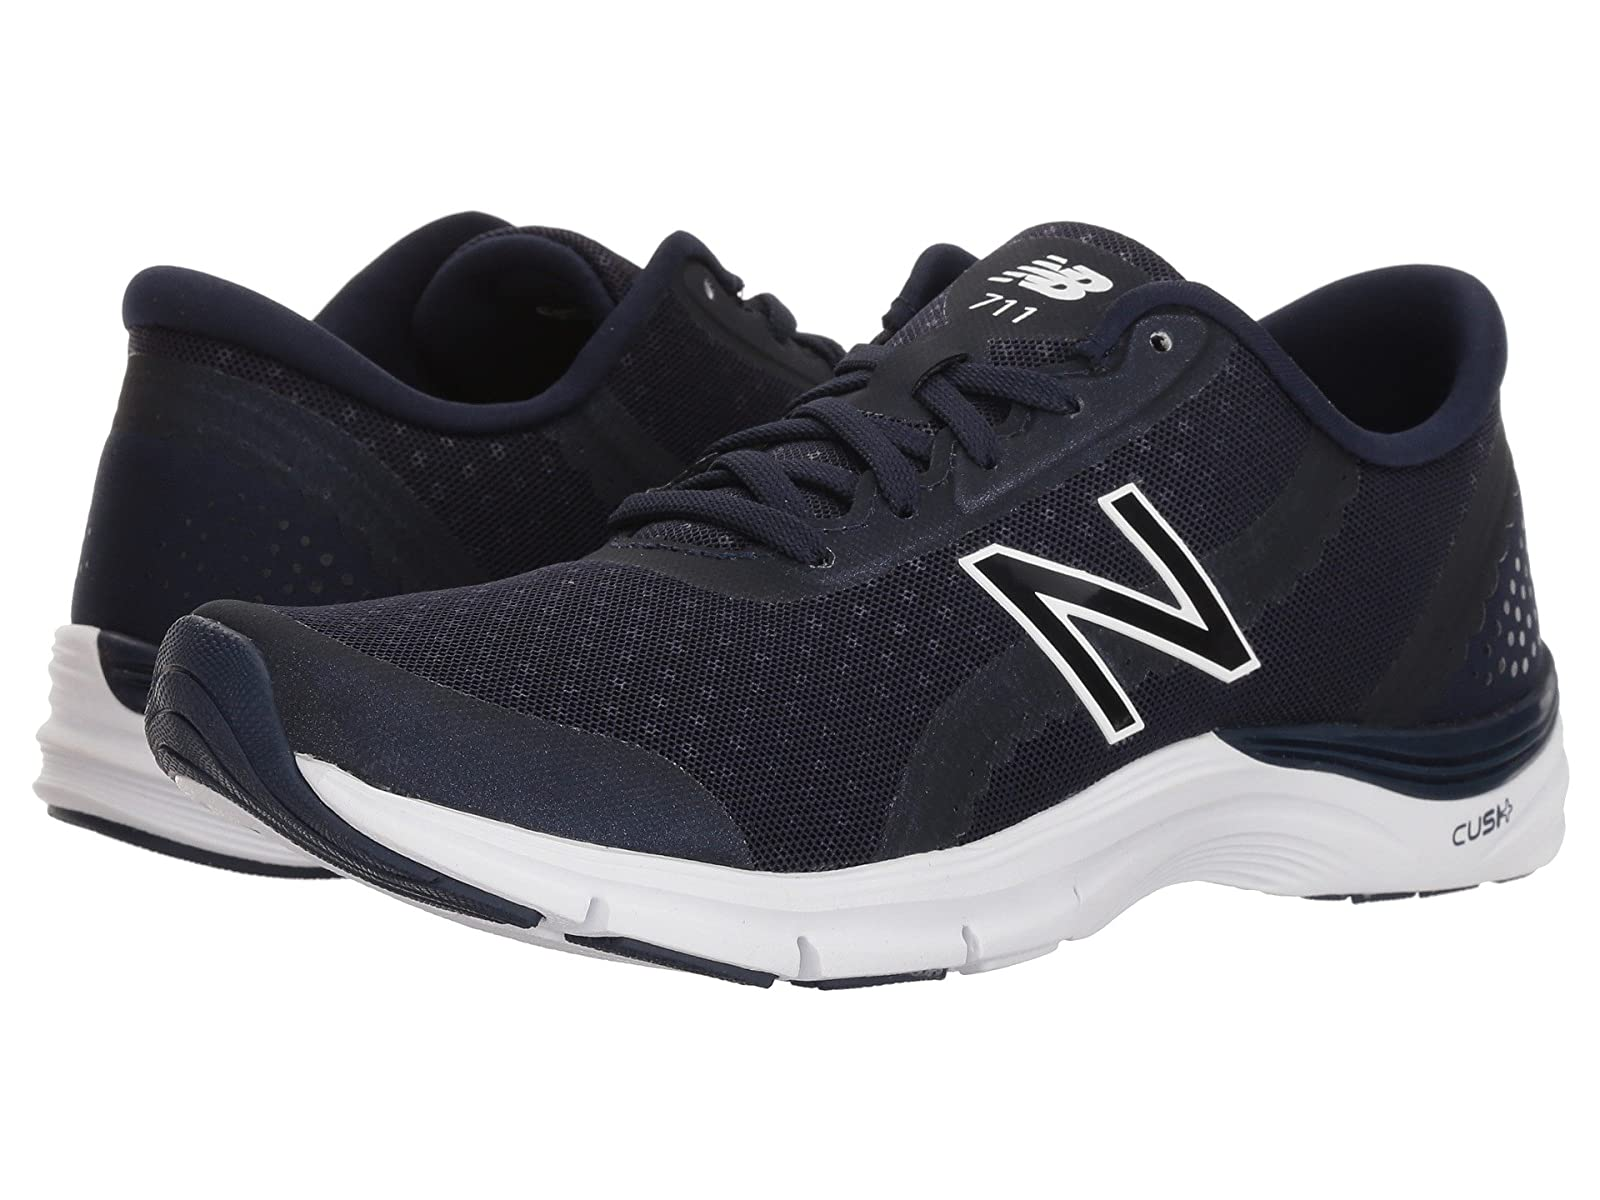 New Balance WX711v3Cheap and distinctive eye-catching shoes